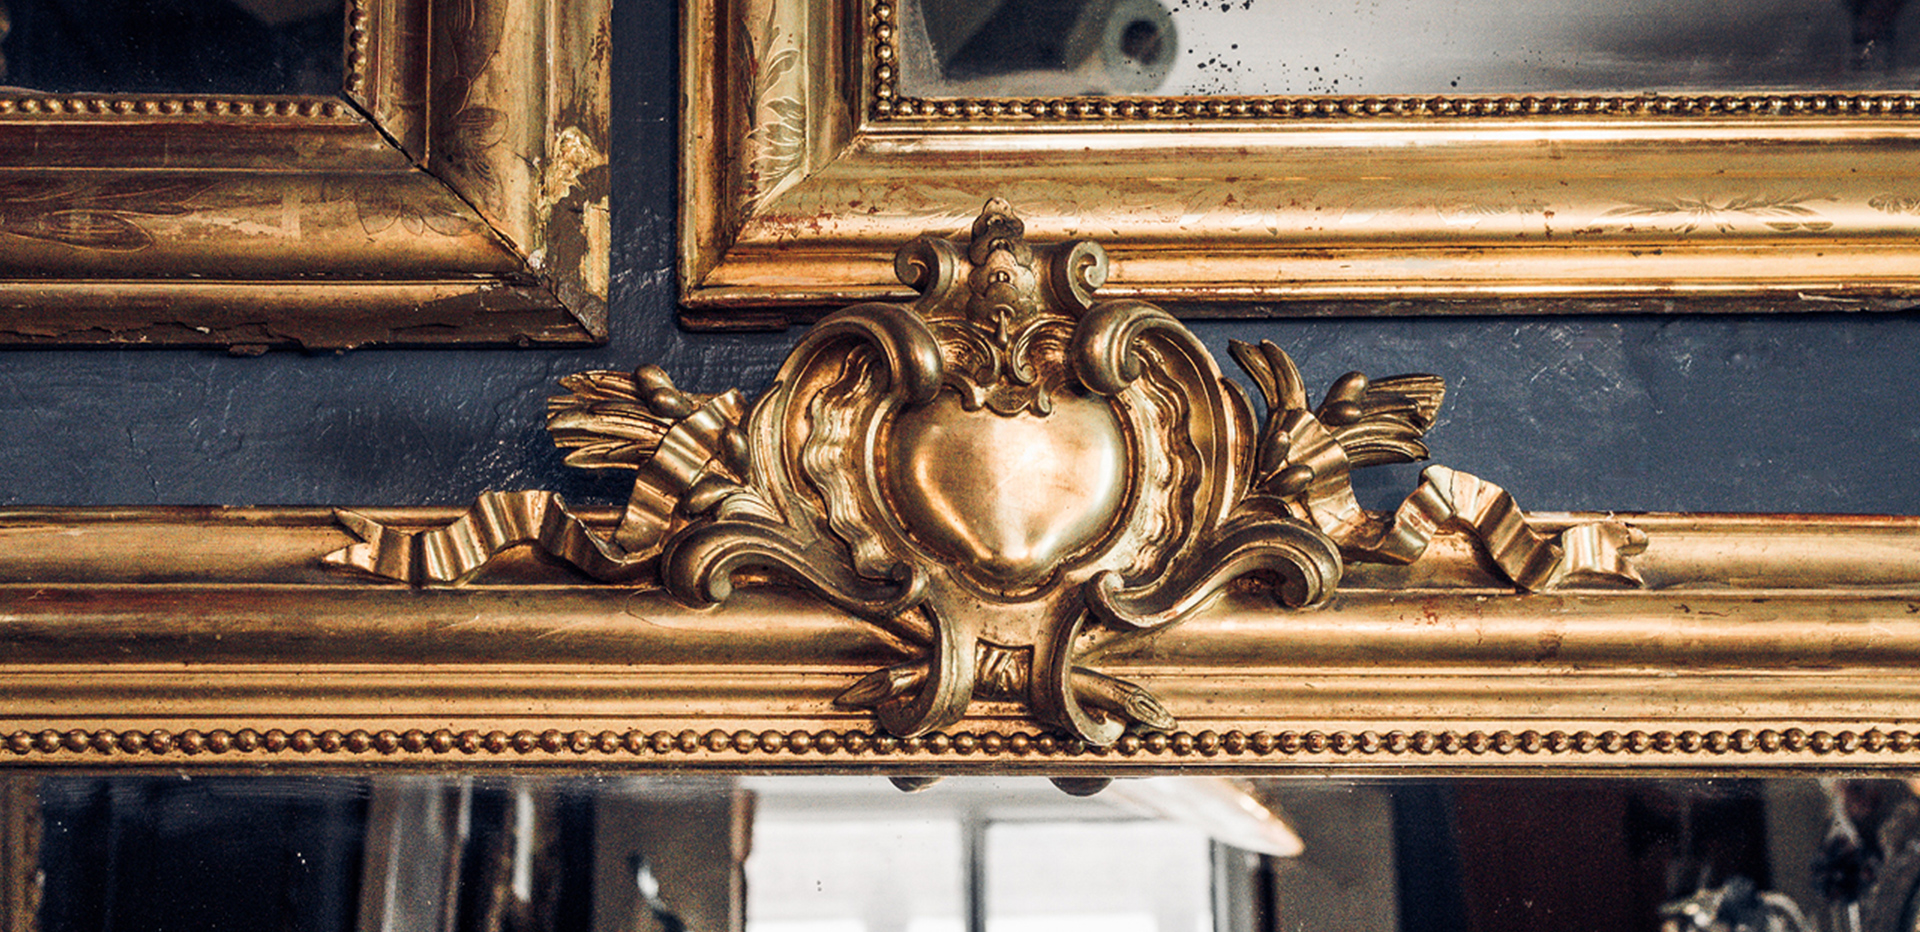 //wildschut-antiques.com/wp-content/uploads/2018/09/Wild-main-header-lp-mirror-heart.jpg